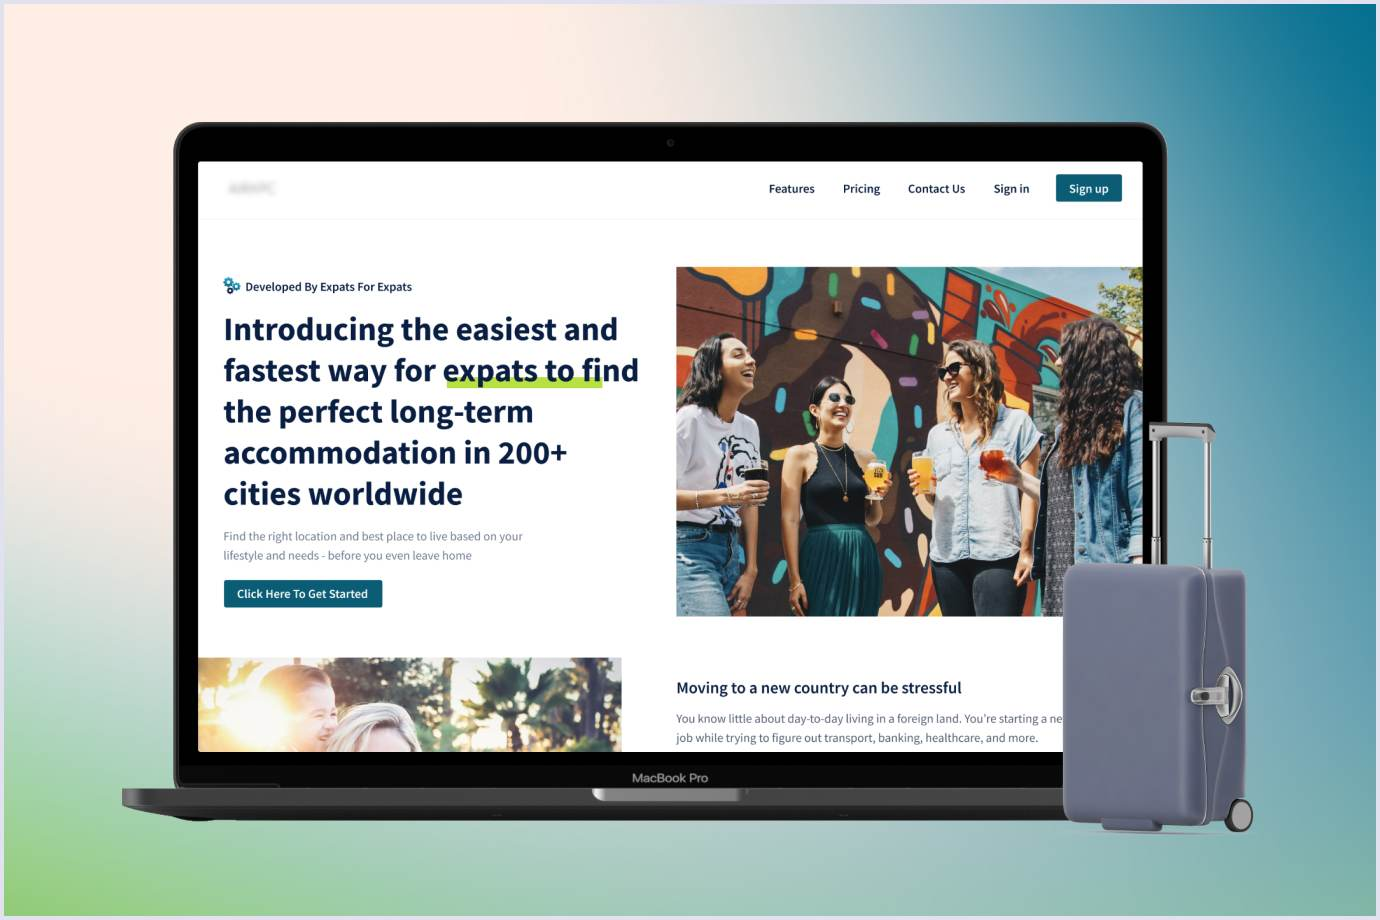 SaaS minimum viable product of accommodation search for expats